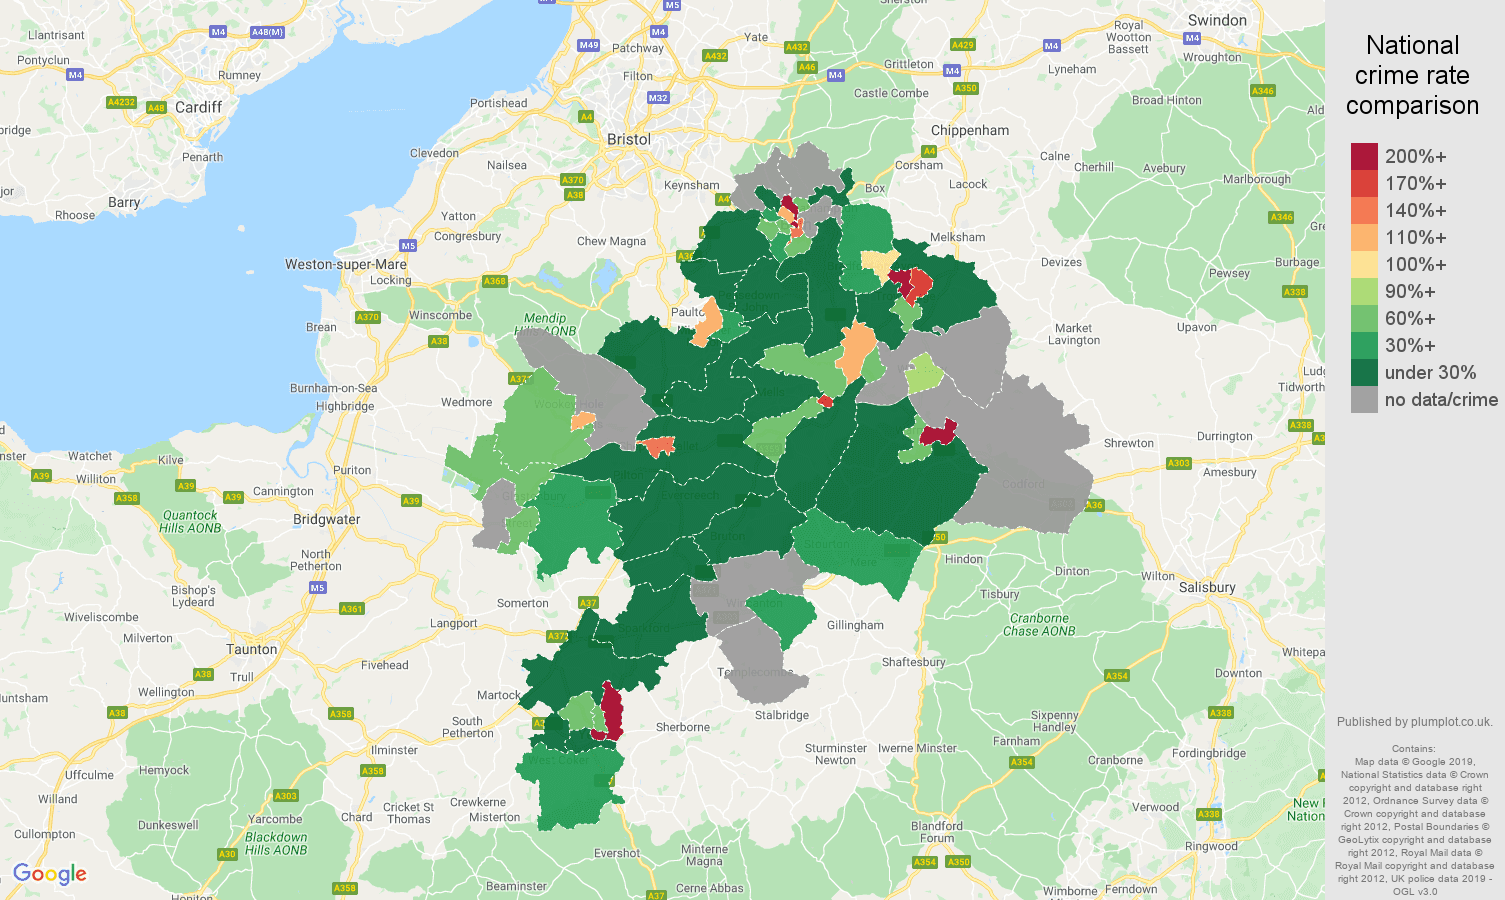 Bath shoplifting crime rate comparison map